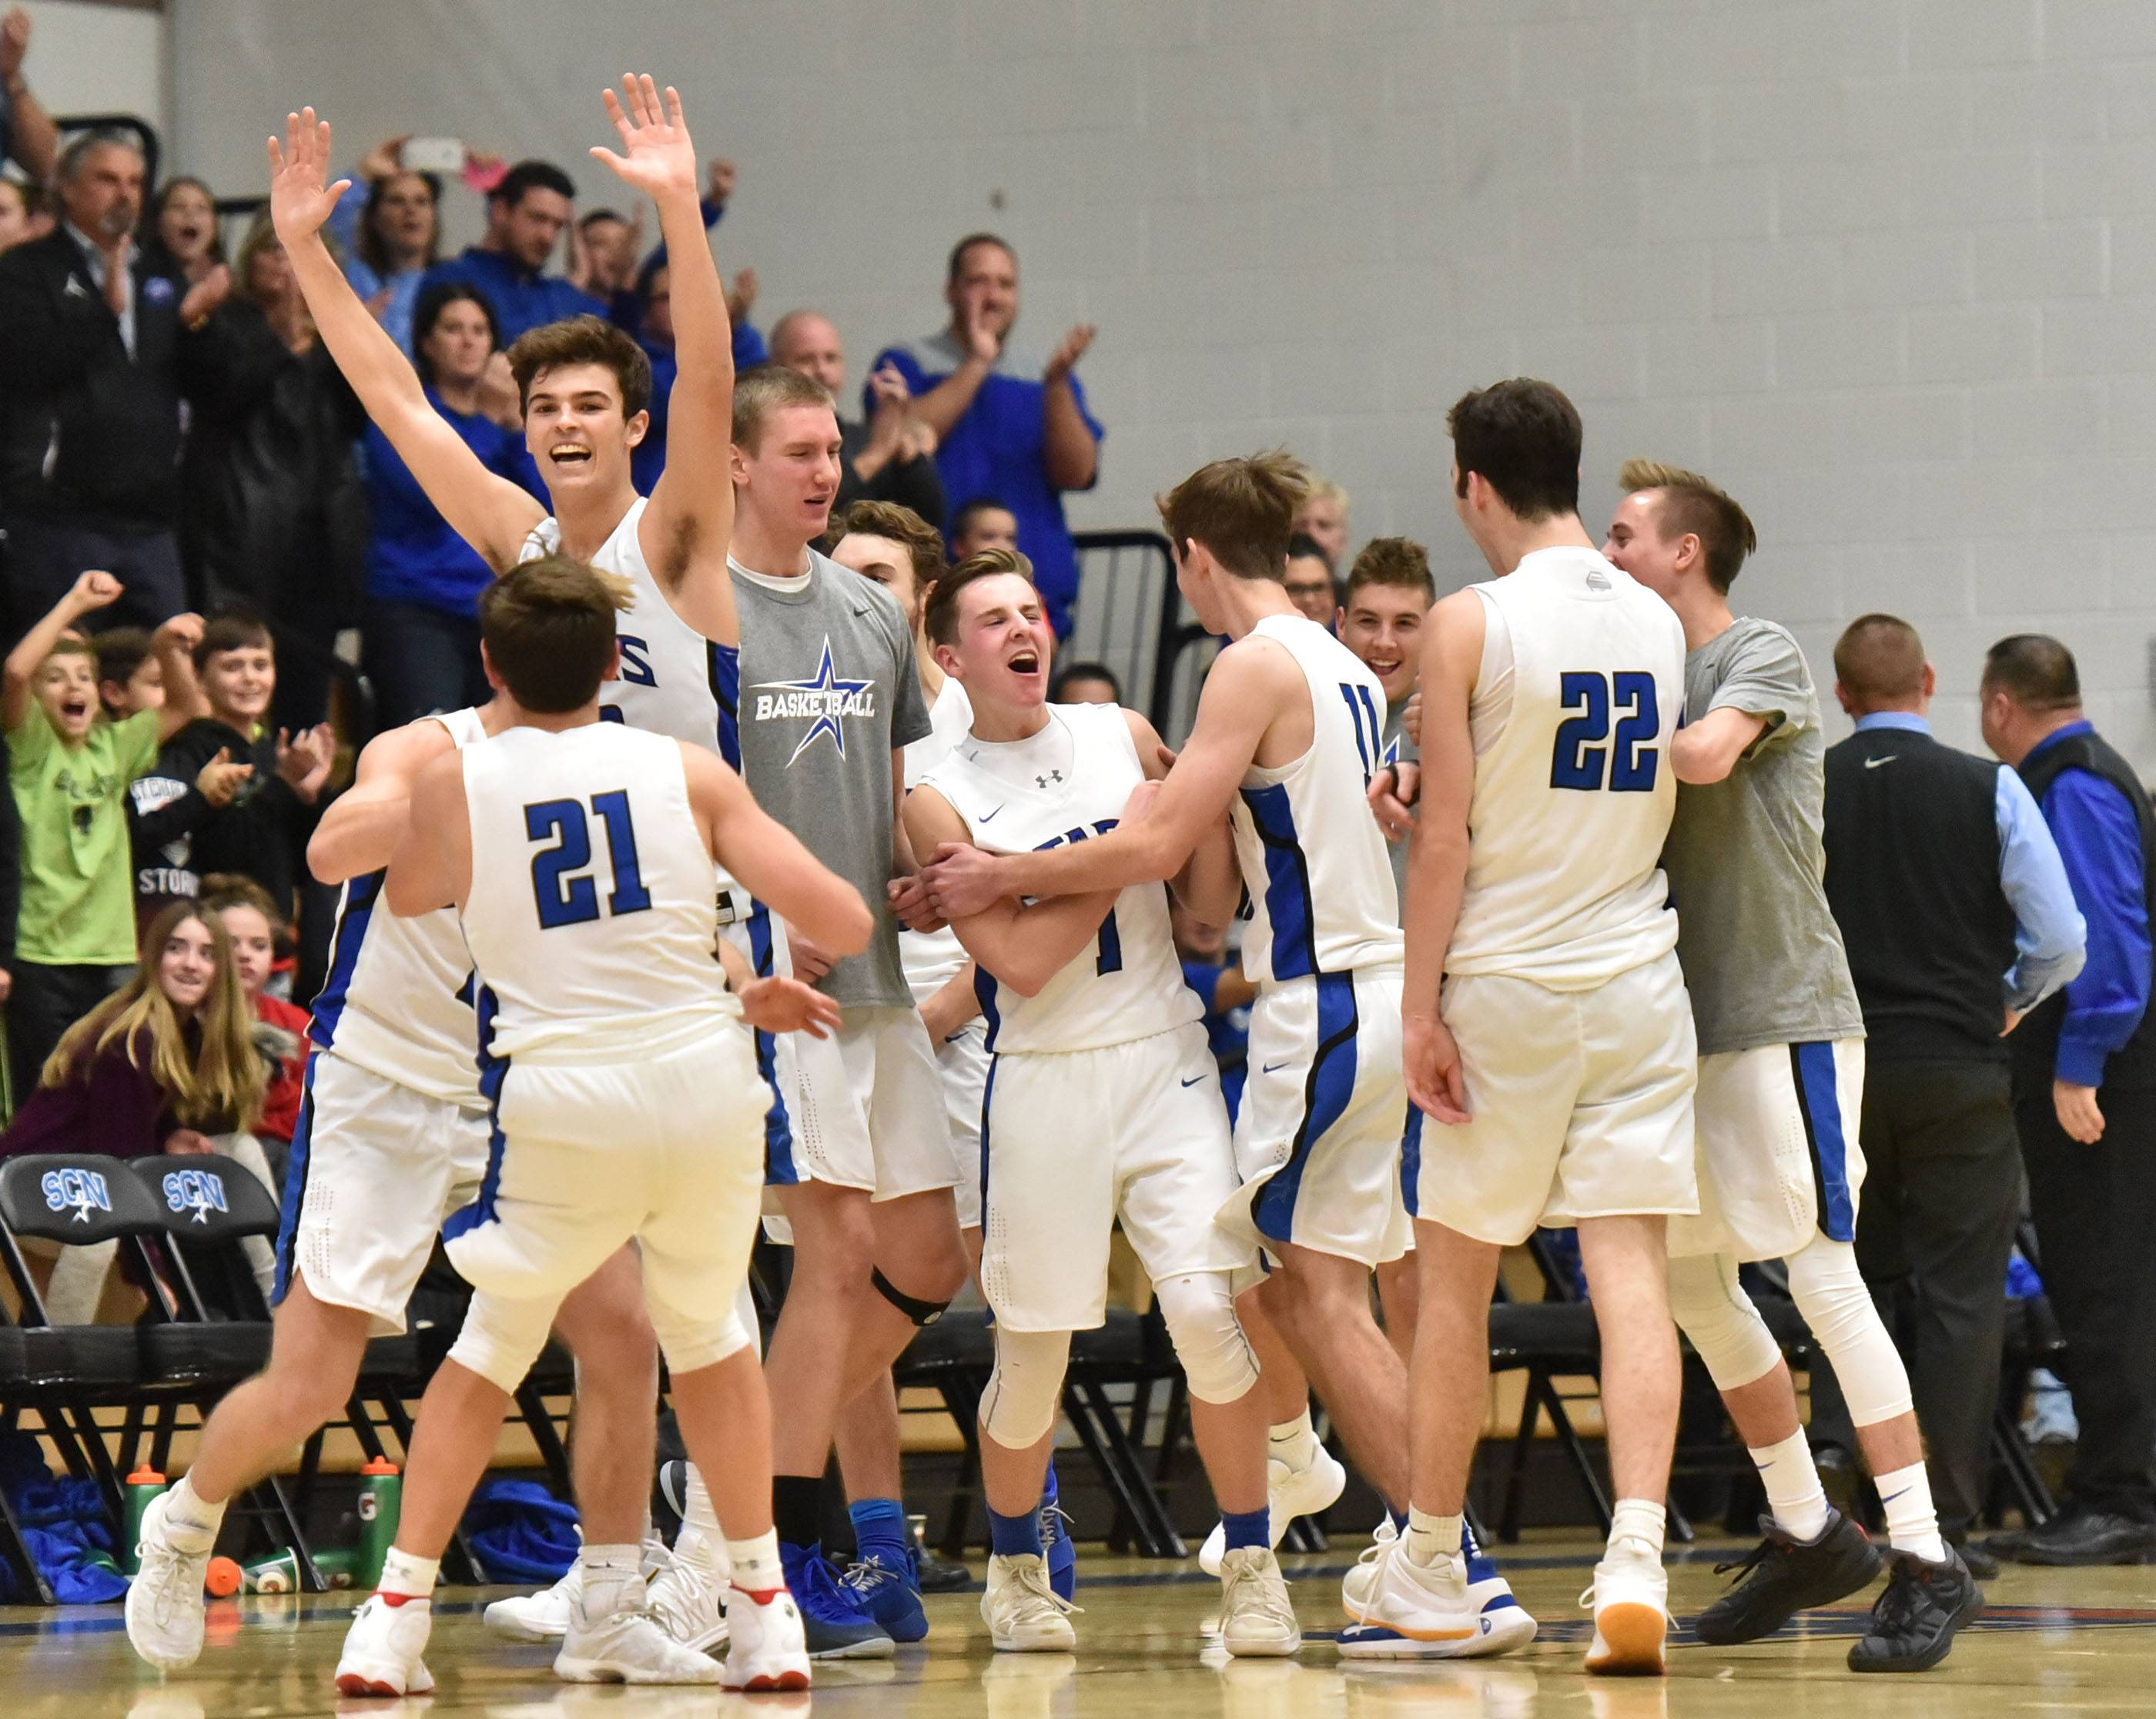 St. Charles North celebrates its win against St. Charles East Friday at North High School.